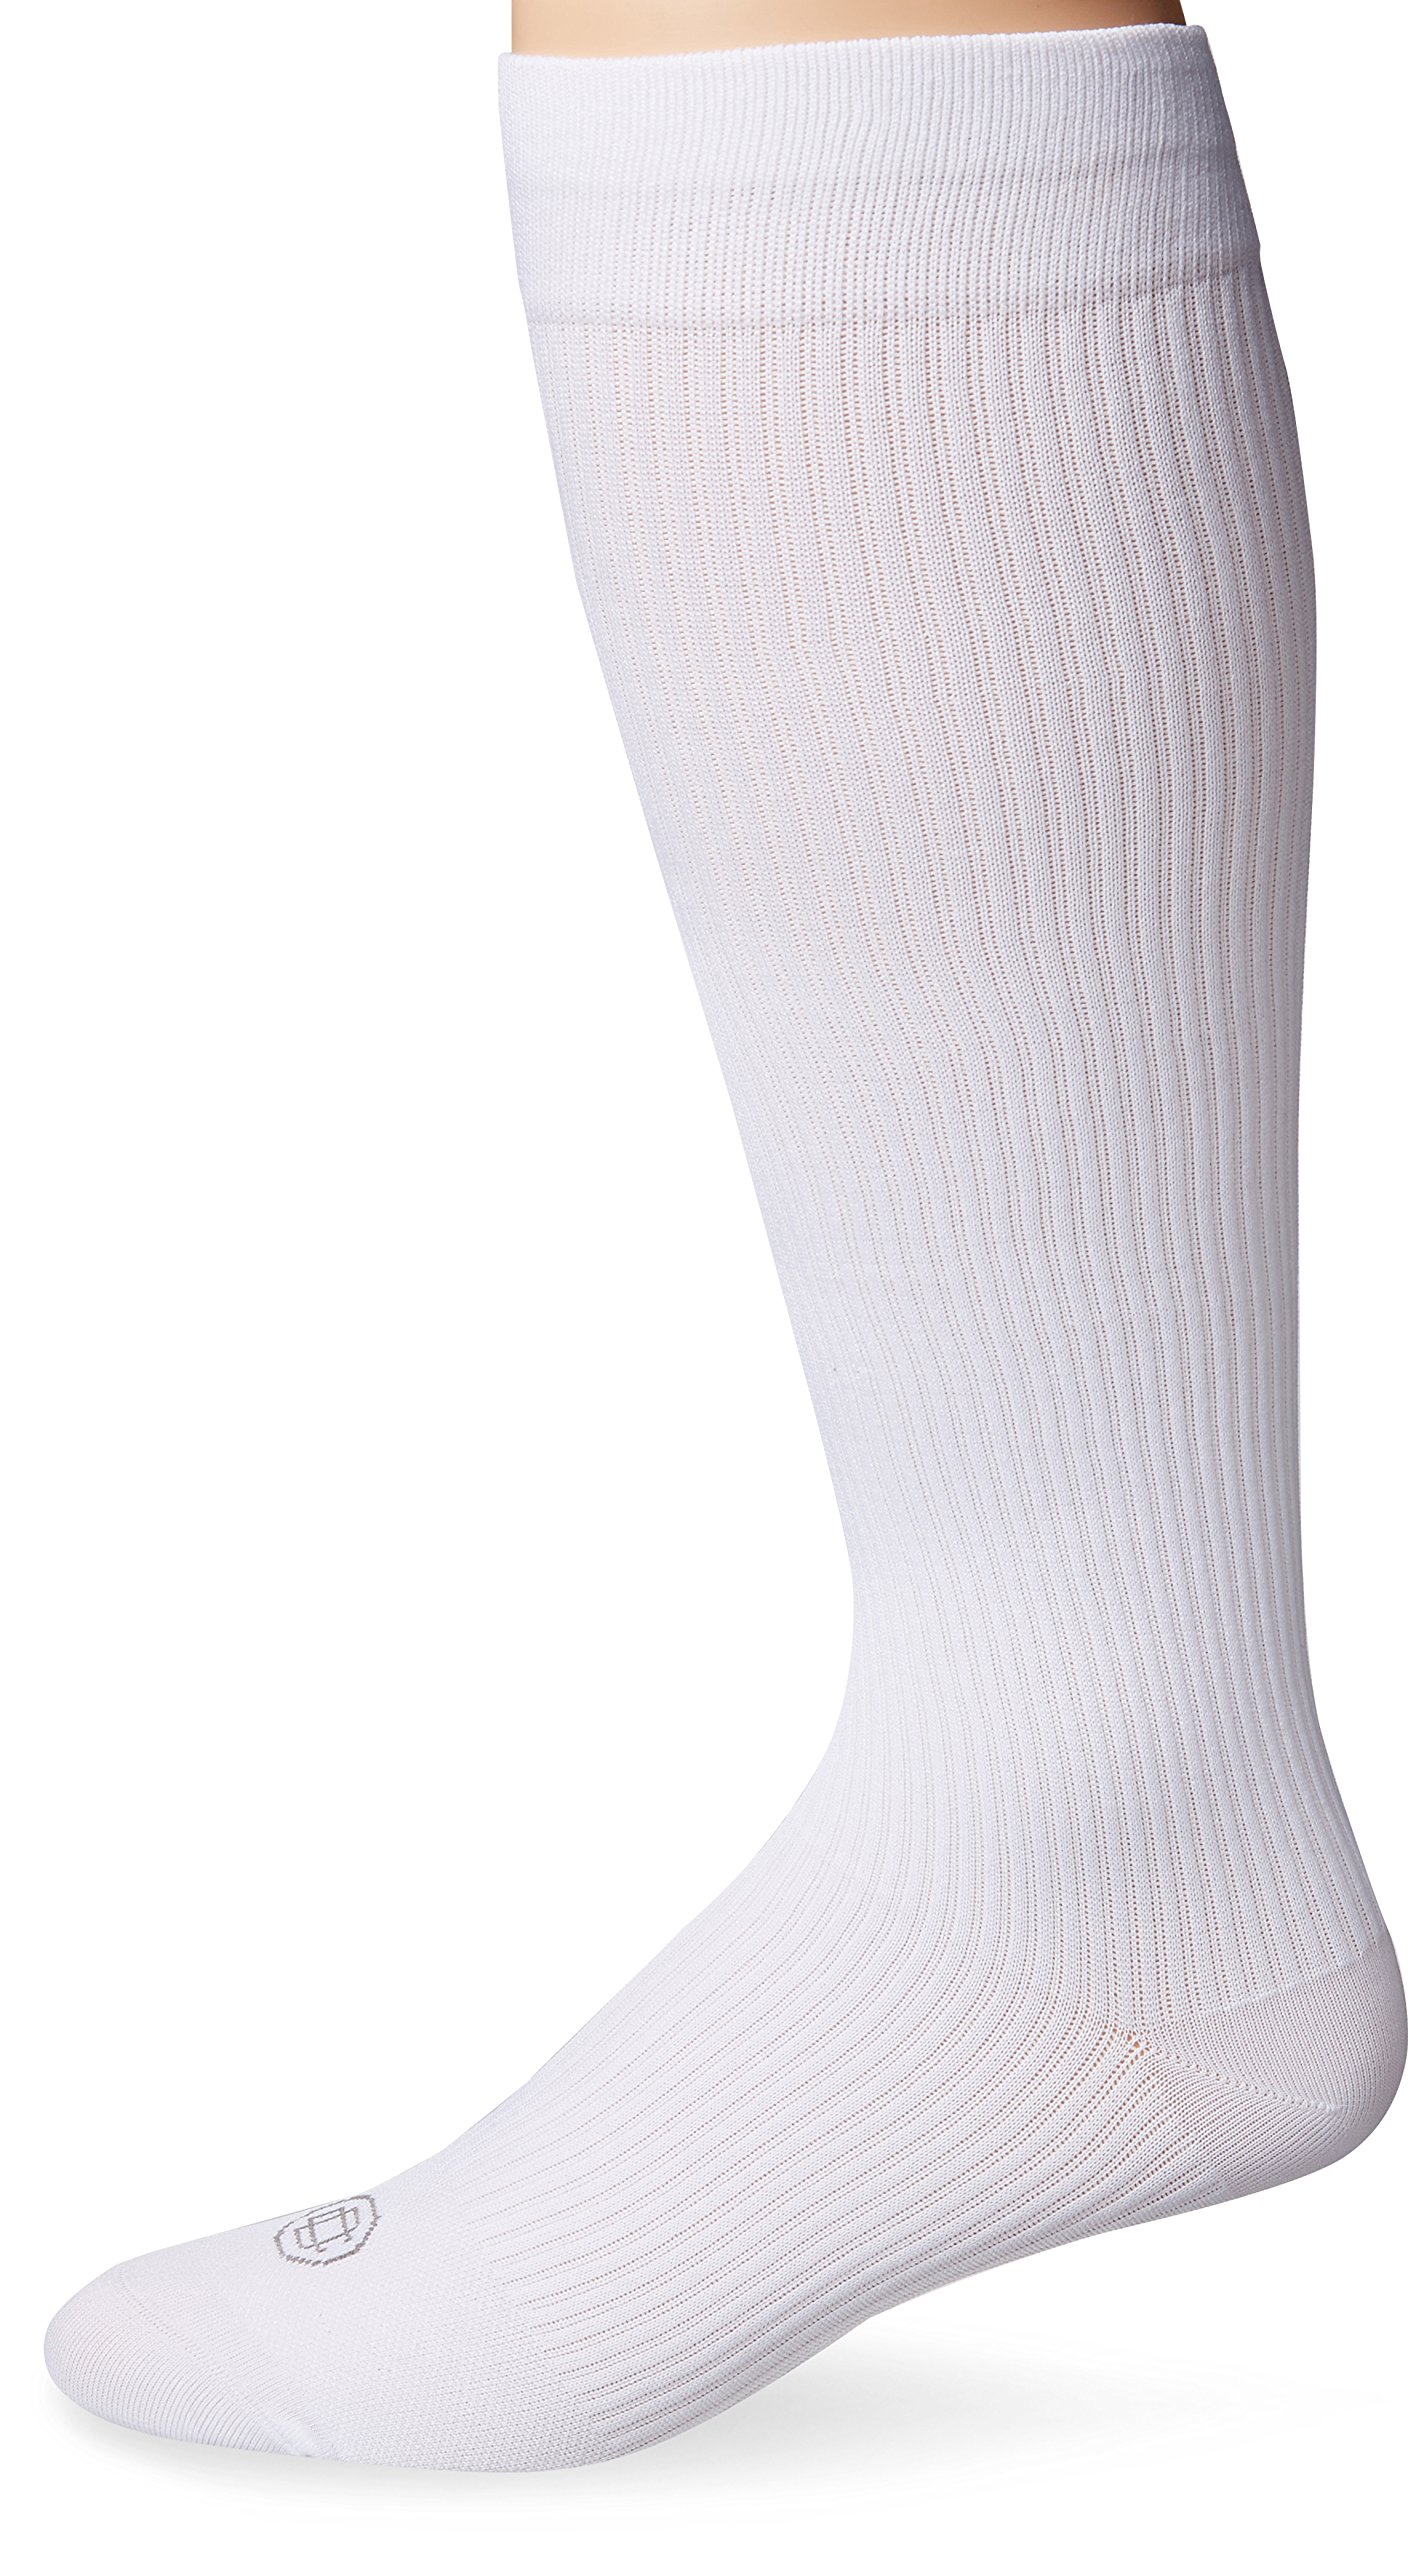 Doctor's Choice Men's Graduated Compression Over-the-Calf 2-Pack, White, Sock Size: 10-13/Shoe Size:6-12.5